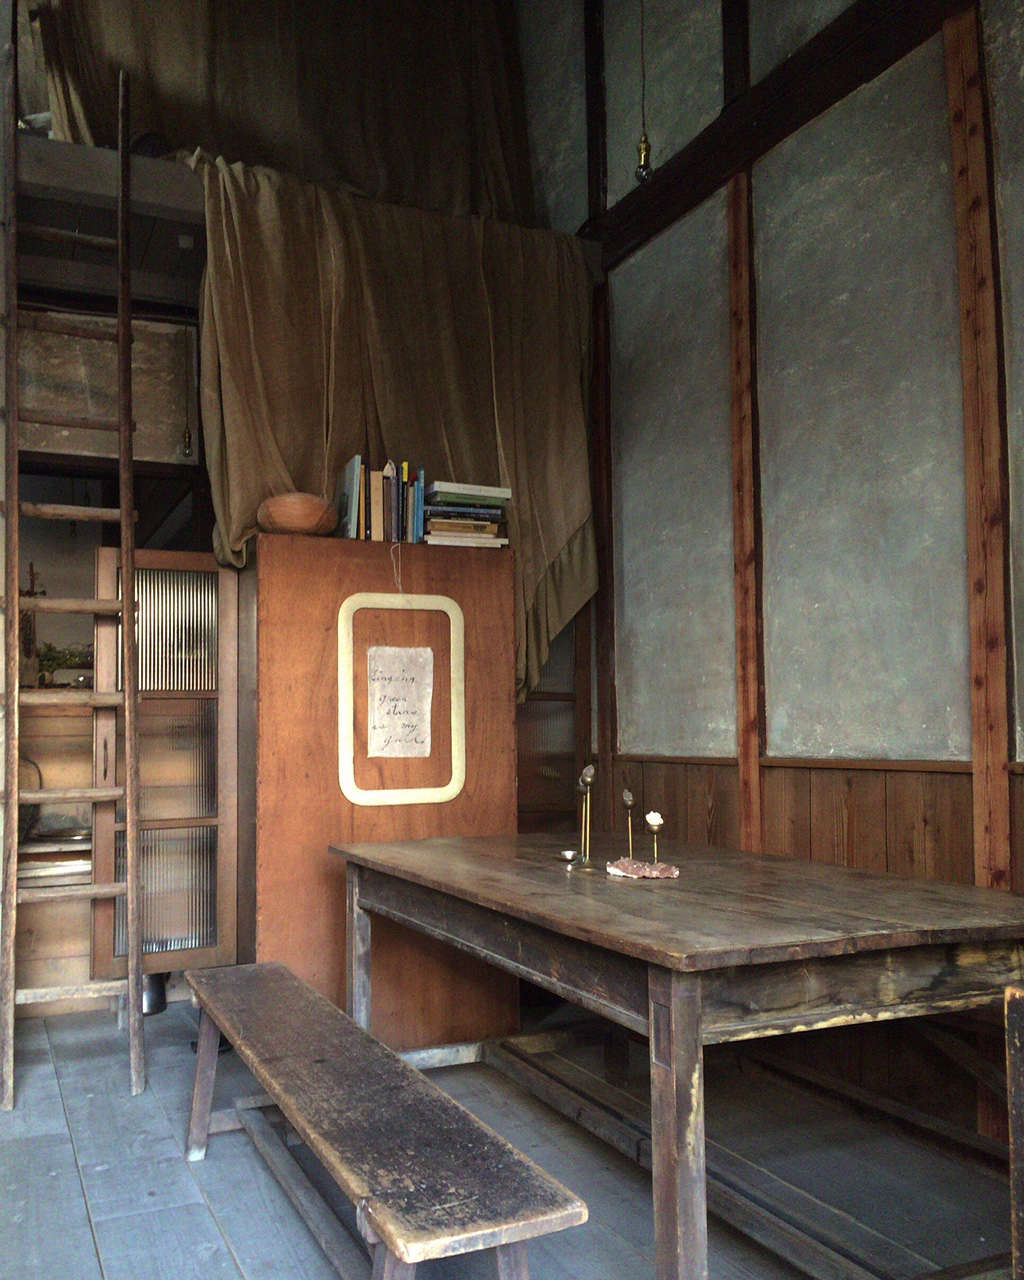 Stardust vegetarian cafe in Kyoto set in a historic wood house with original Japanese paneling and joinery